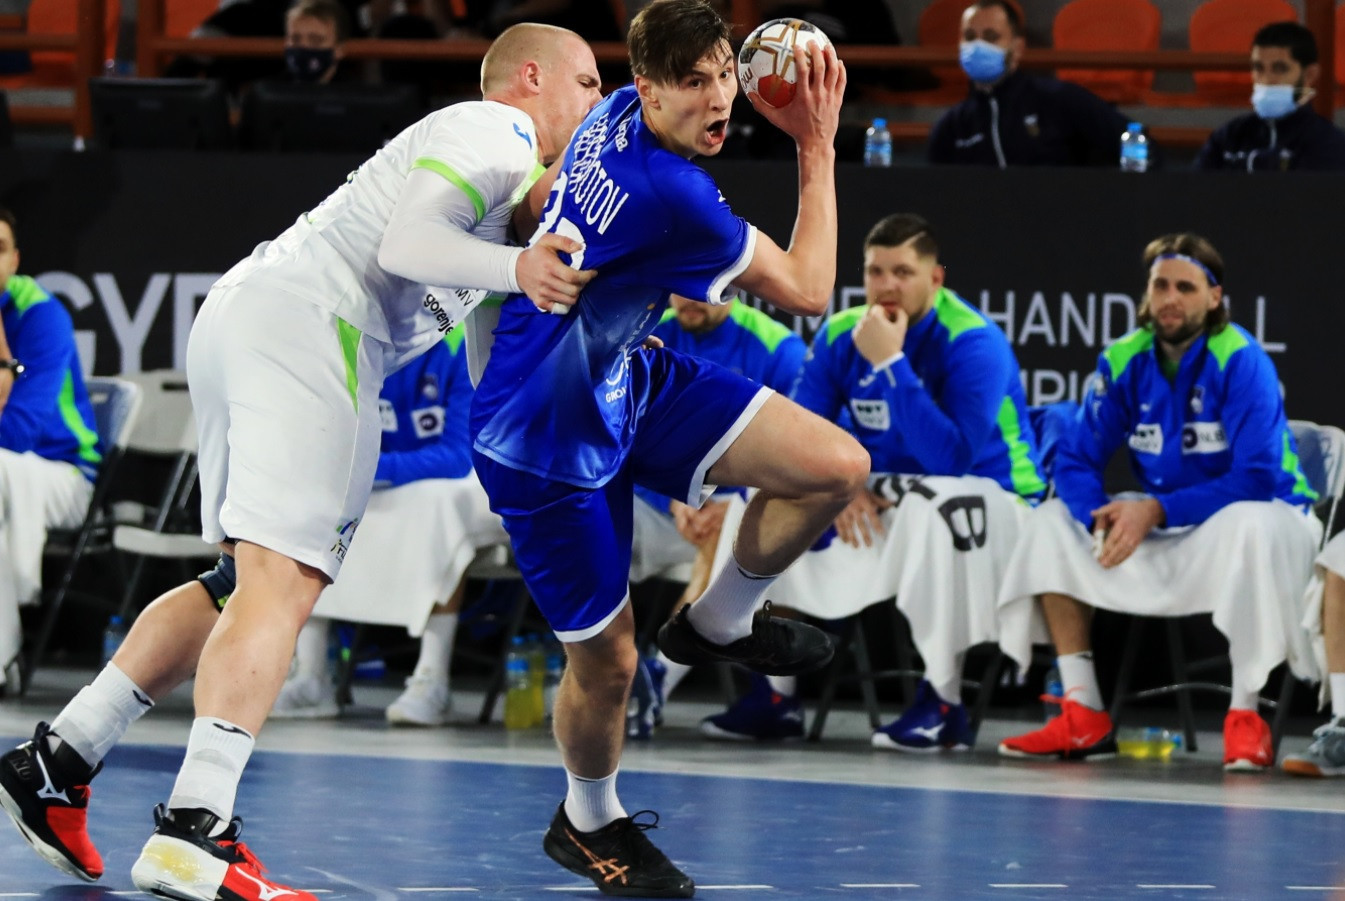 Neutral Russian team claim first win of IHF World Men's Handball Championship